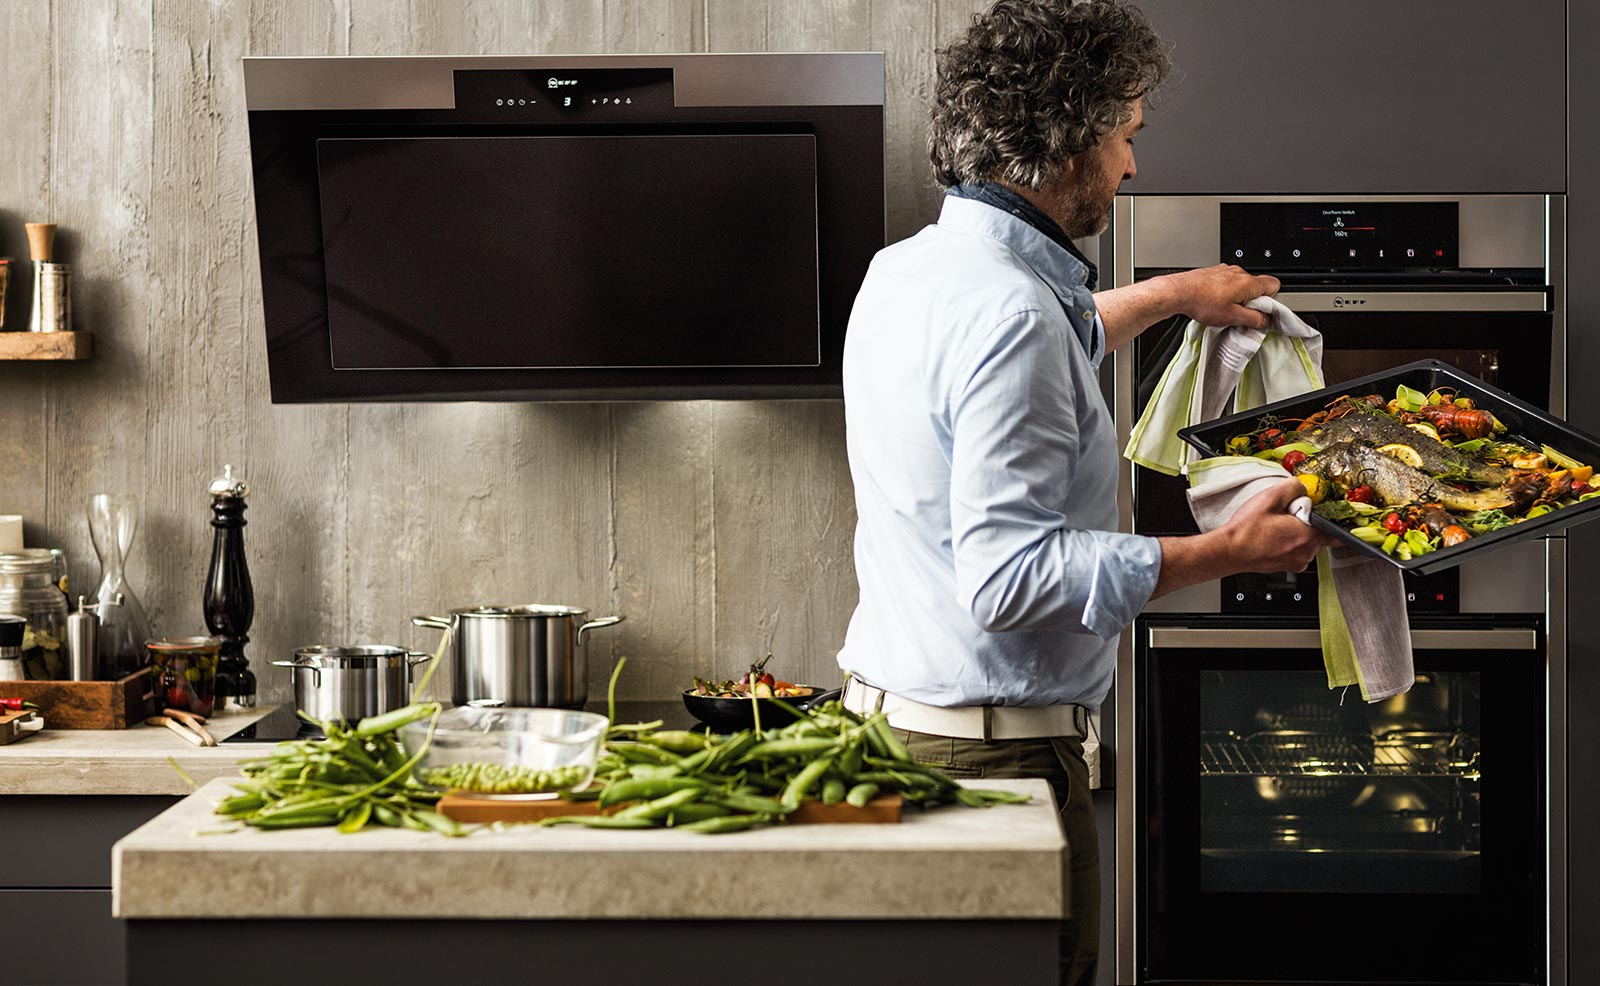 Lifestyle Kitchen Appliances